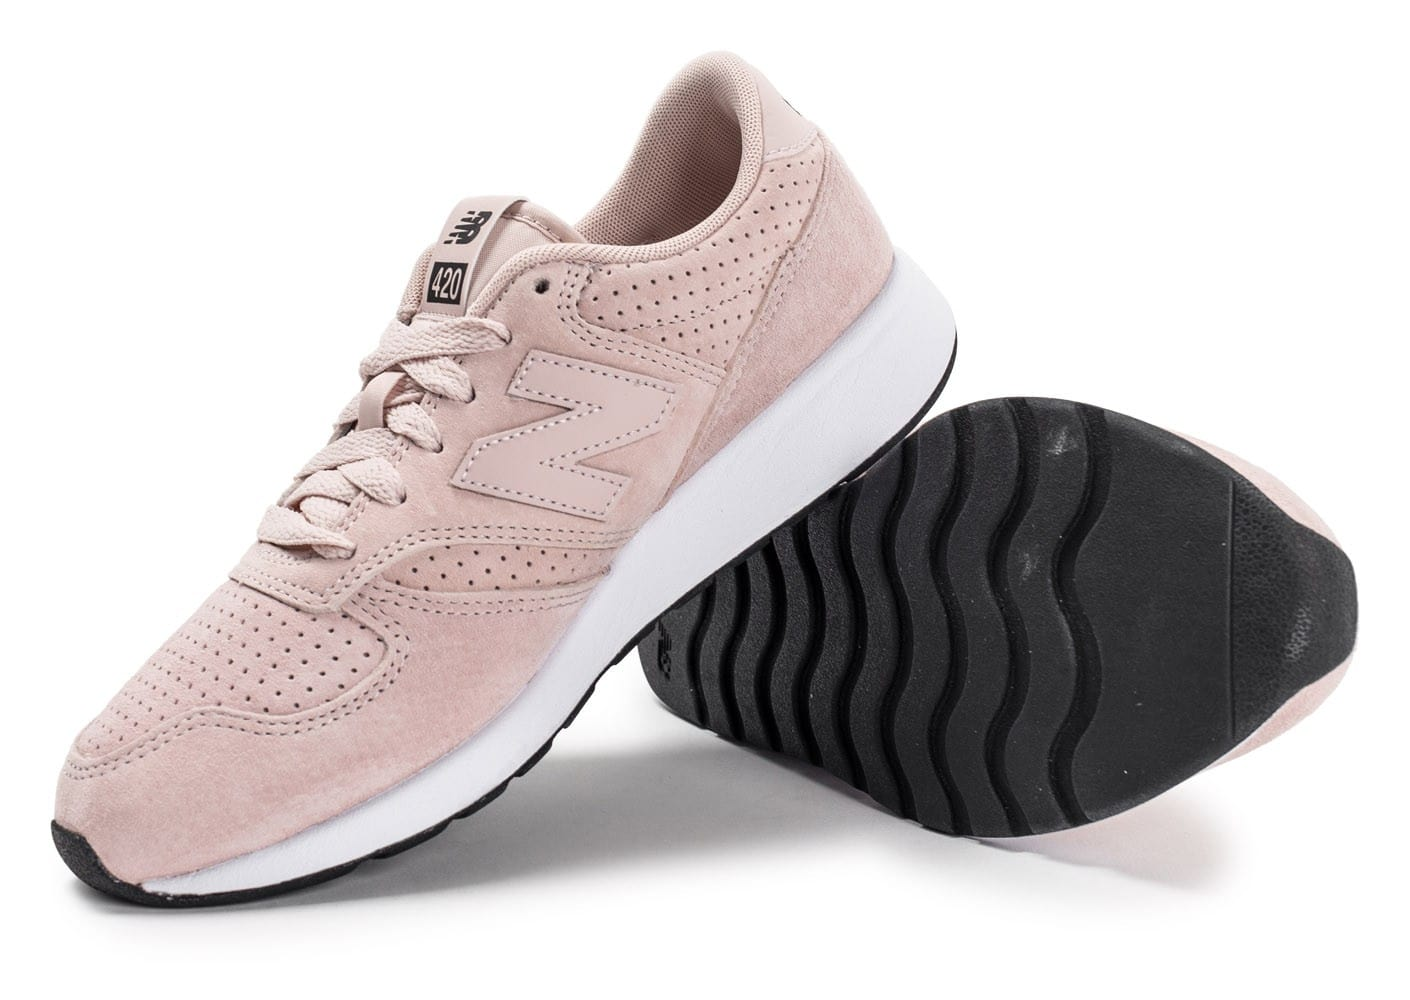 Chaussures Balance Baskets Mrl420sk Dusty Leather Femme New Pink PZXuki